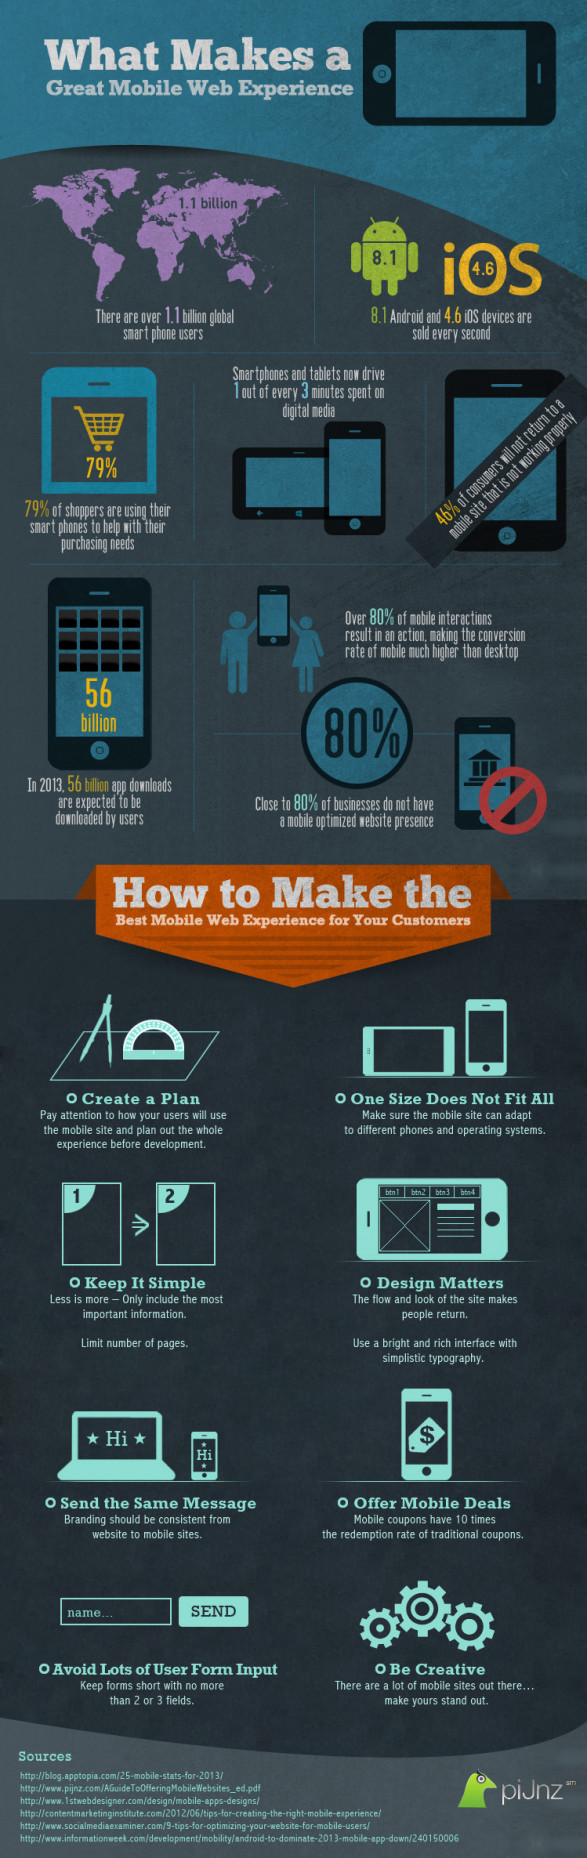 What Makes a Great Mobile Web Experience